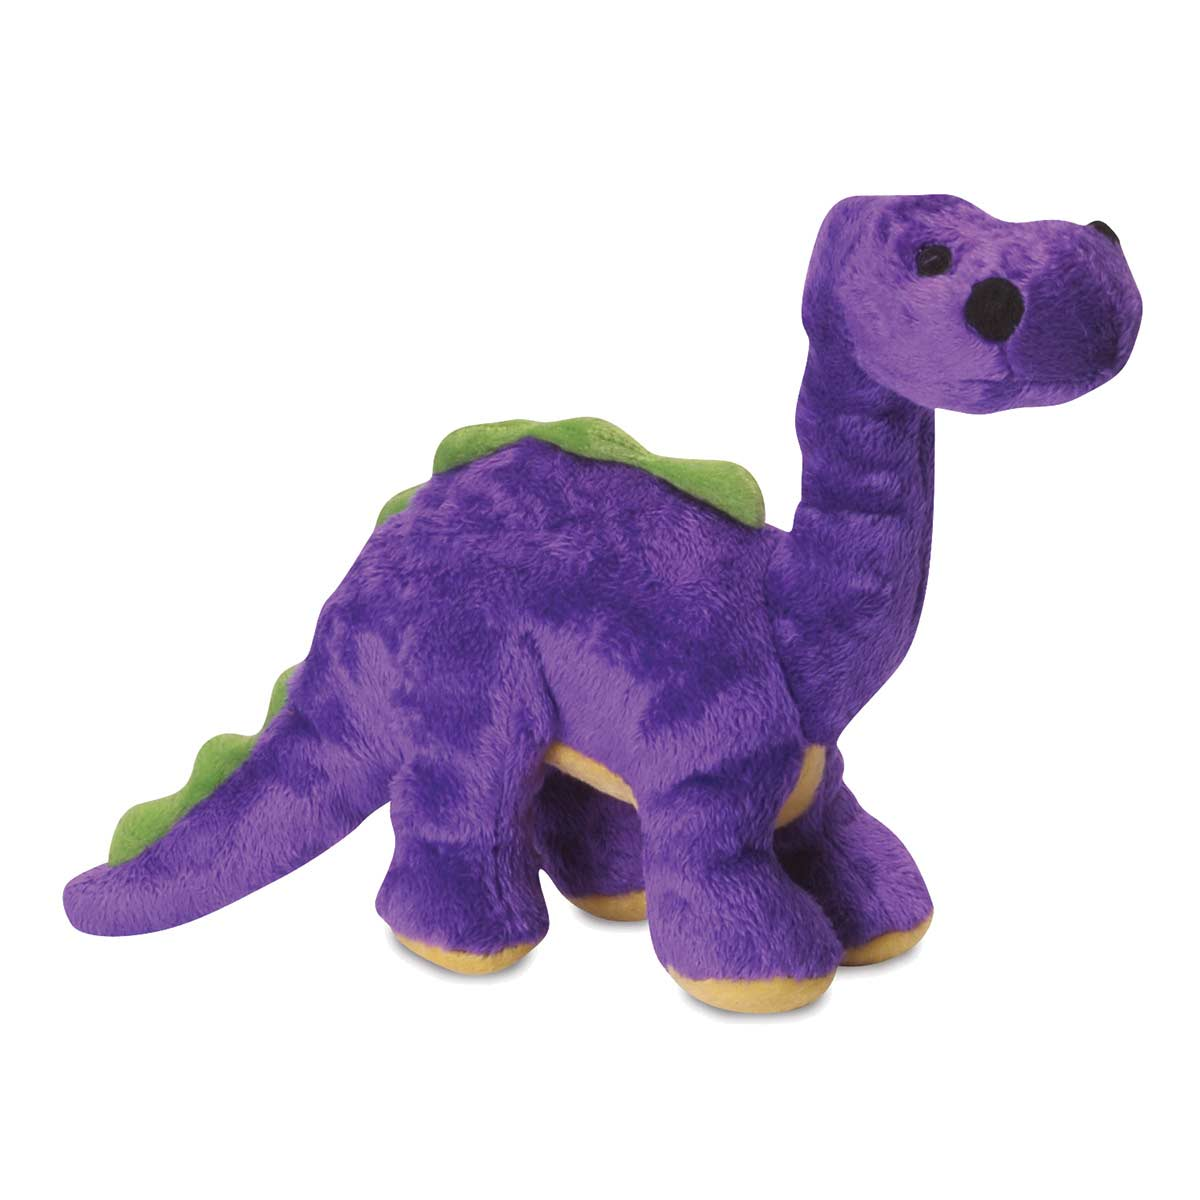 goDog Dinos Large Grunts Large Bruto Doy Toy 16.5 inches